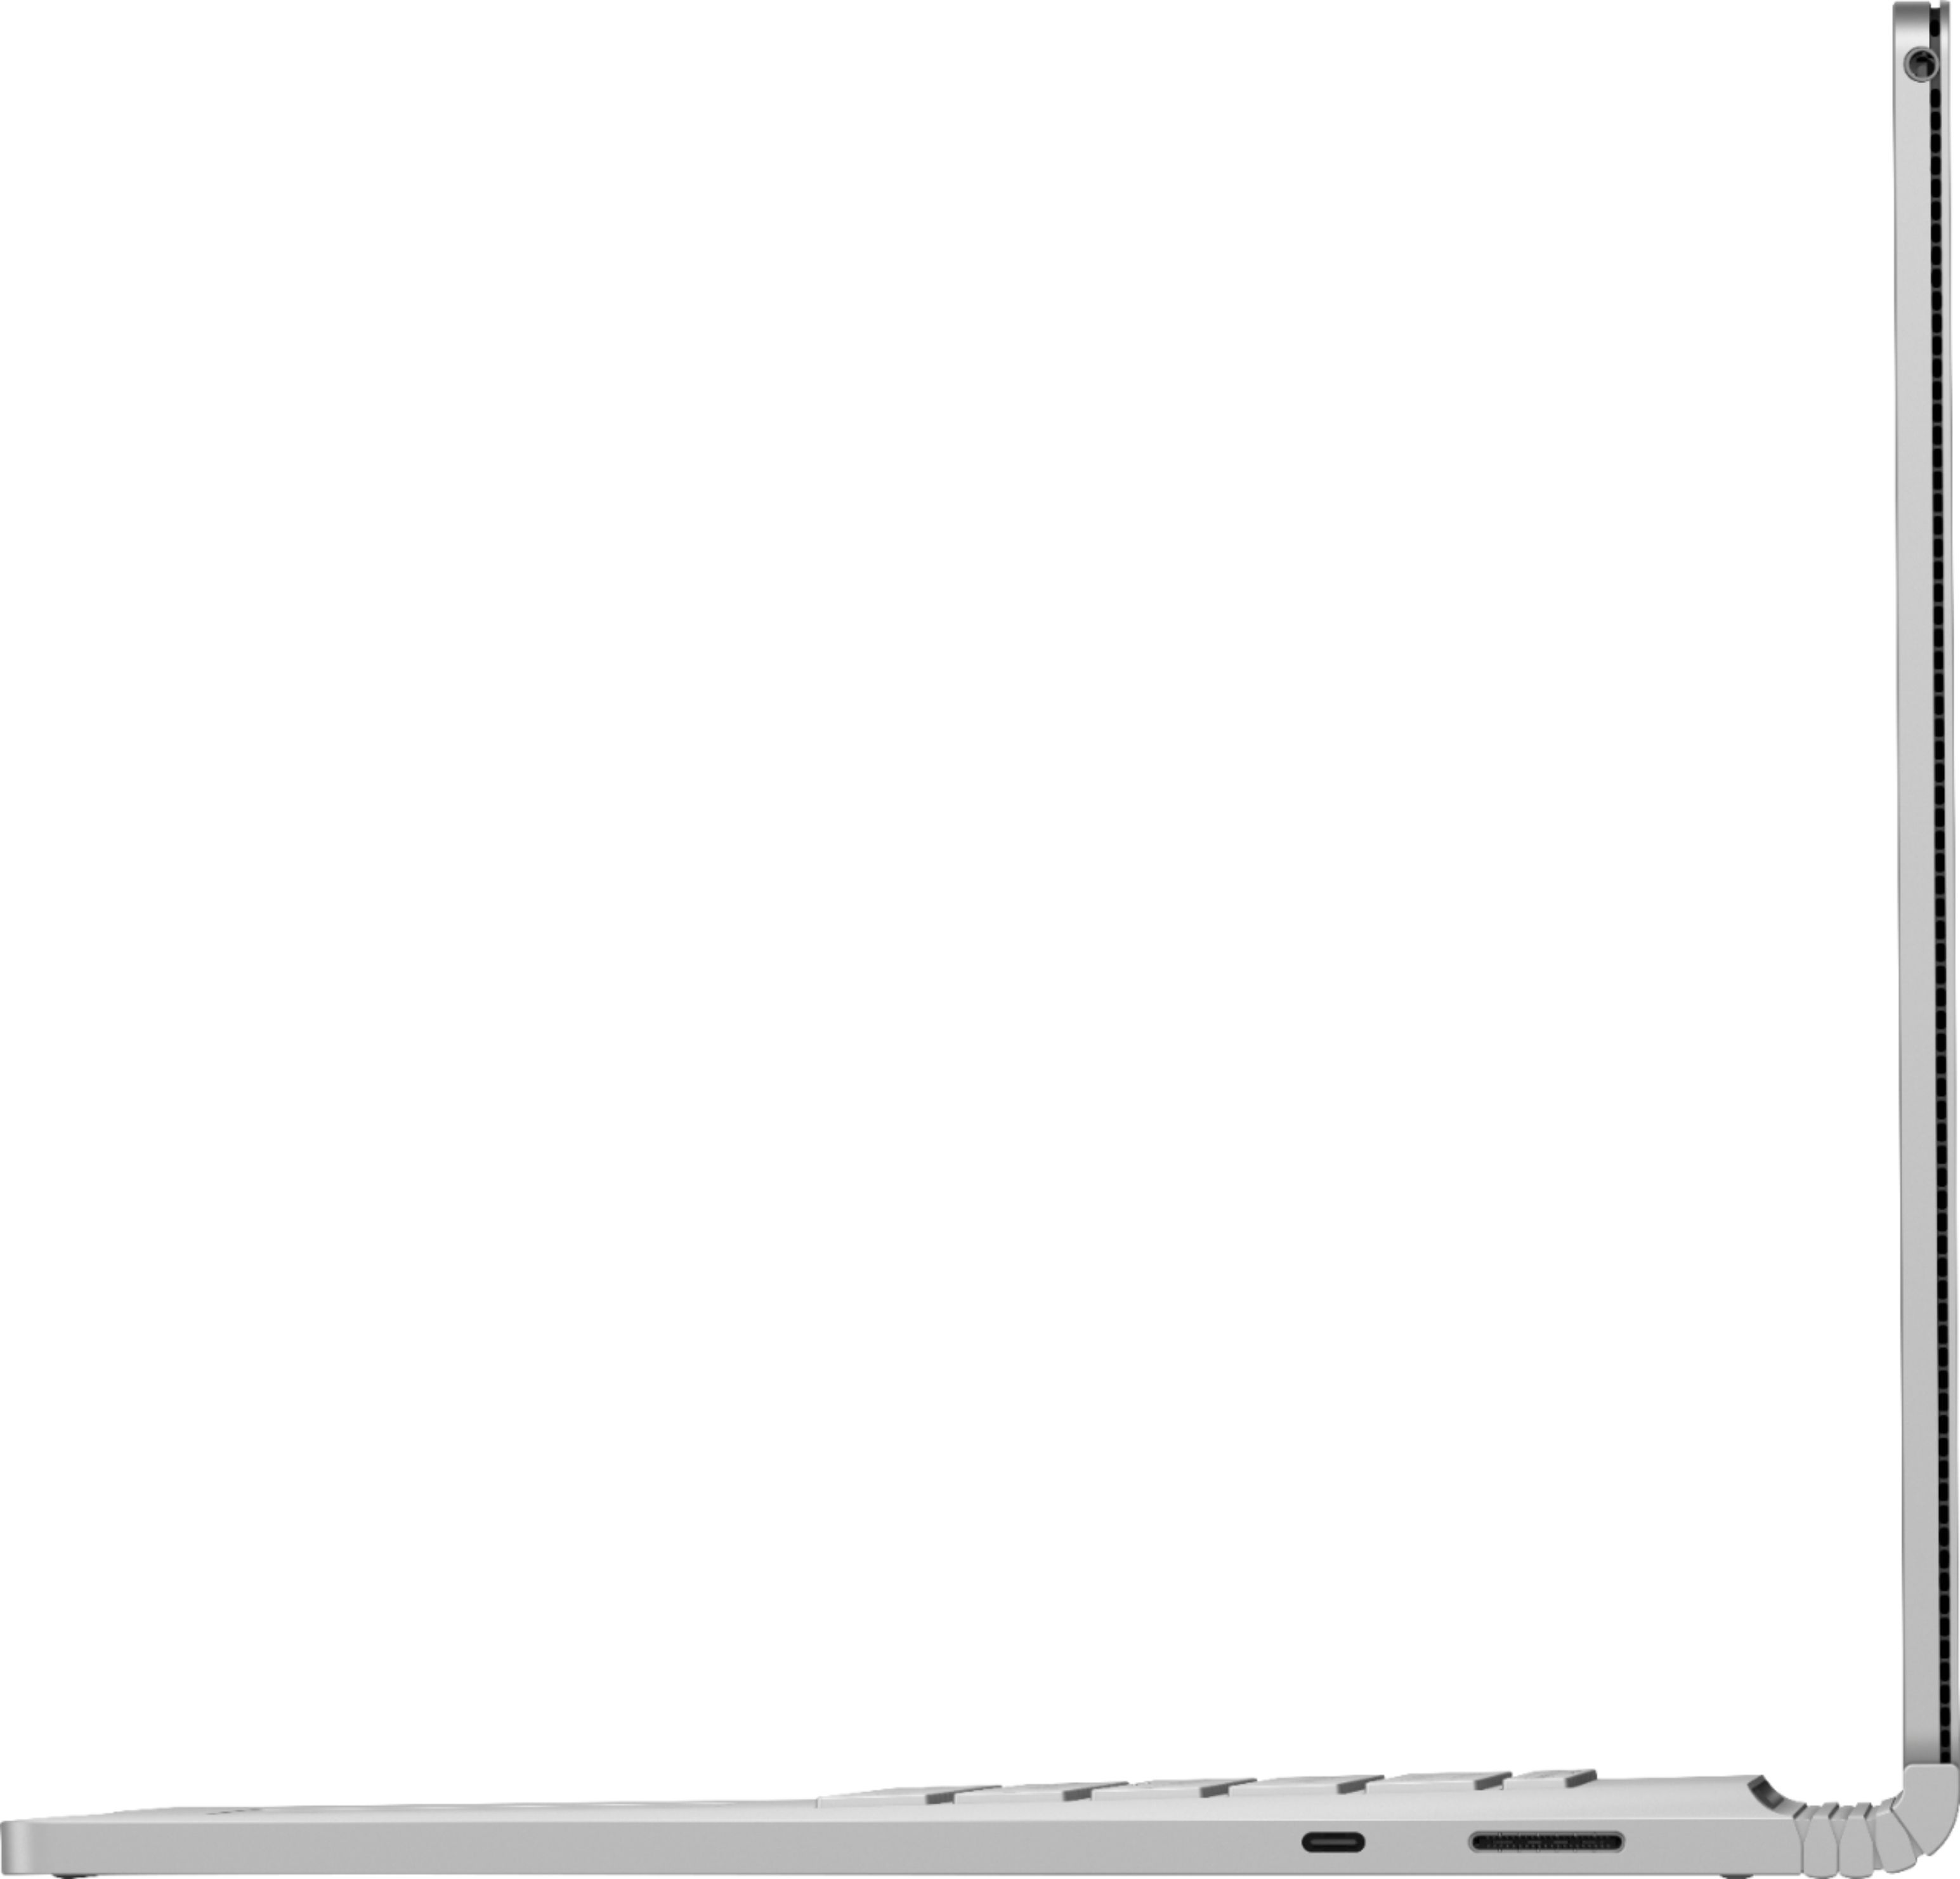 """Alt View Zoom 13. Microsoft - Surface Book 3 15"""" Touch-Screen PixelSense™ - 2-in-1 Laptop - Intel Core i7 - 32GB Memory - 512GB SSD - Platinum."""